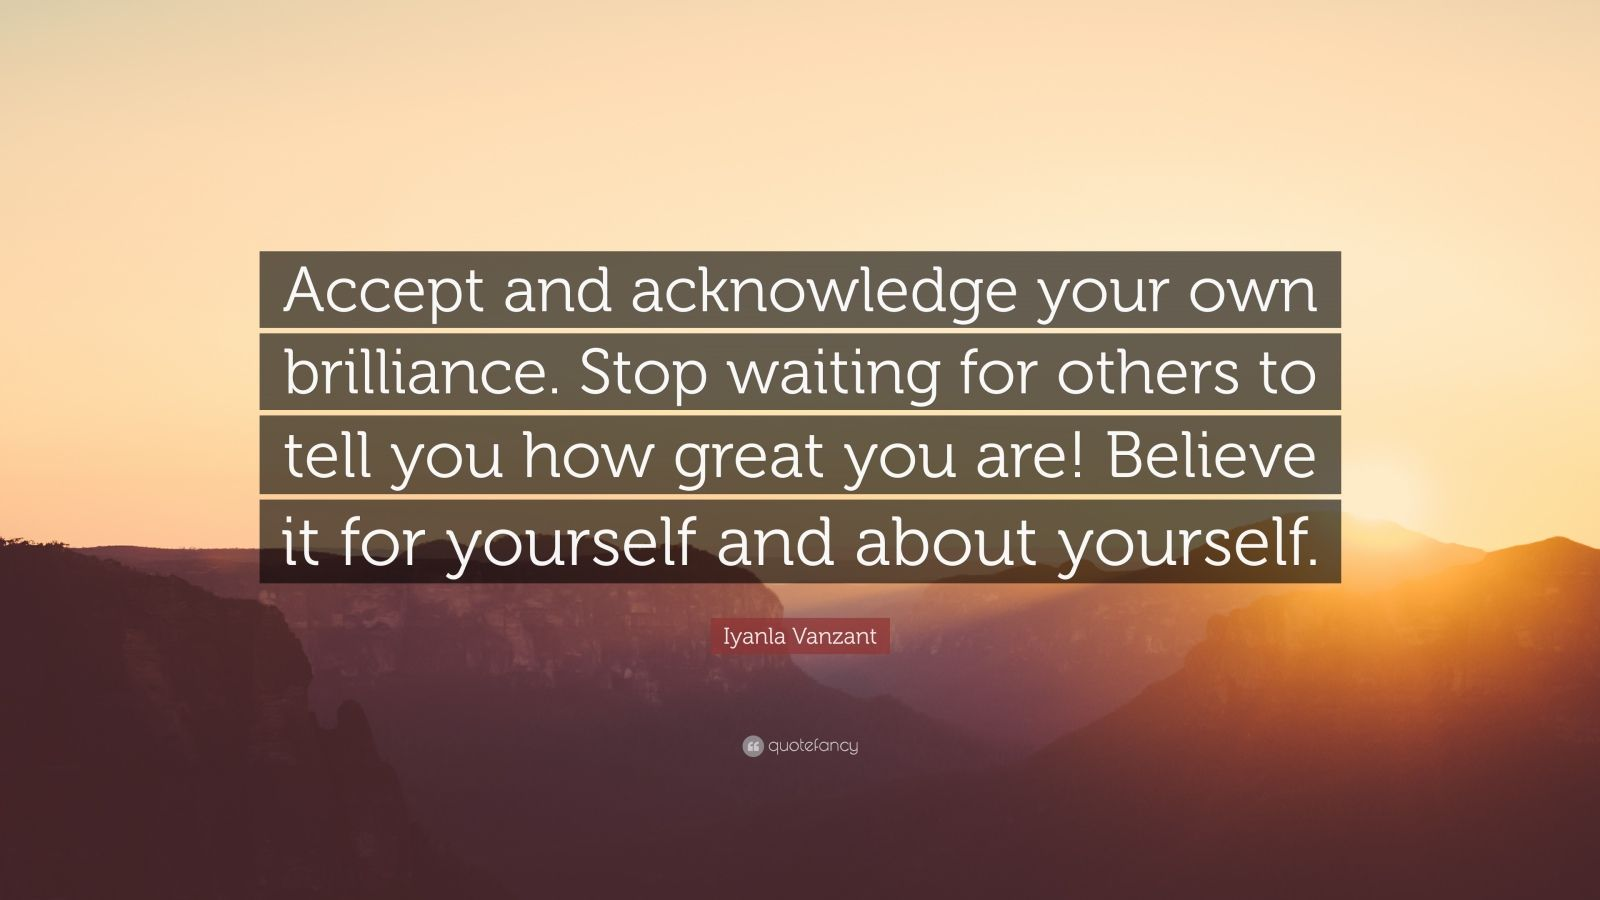 "Iyanla Vanzant Quote: ""Accept and acknowledge your own brilliance. Stop waiting for others to tell you how great you are! Believe it for yourself and about yourself."""